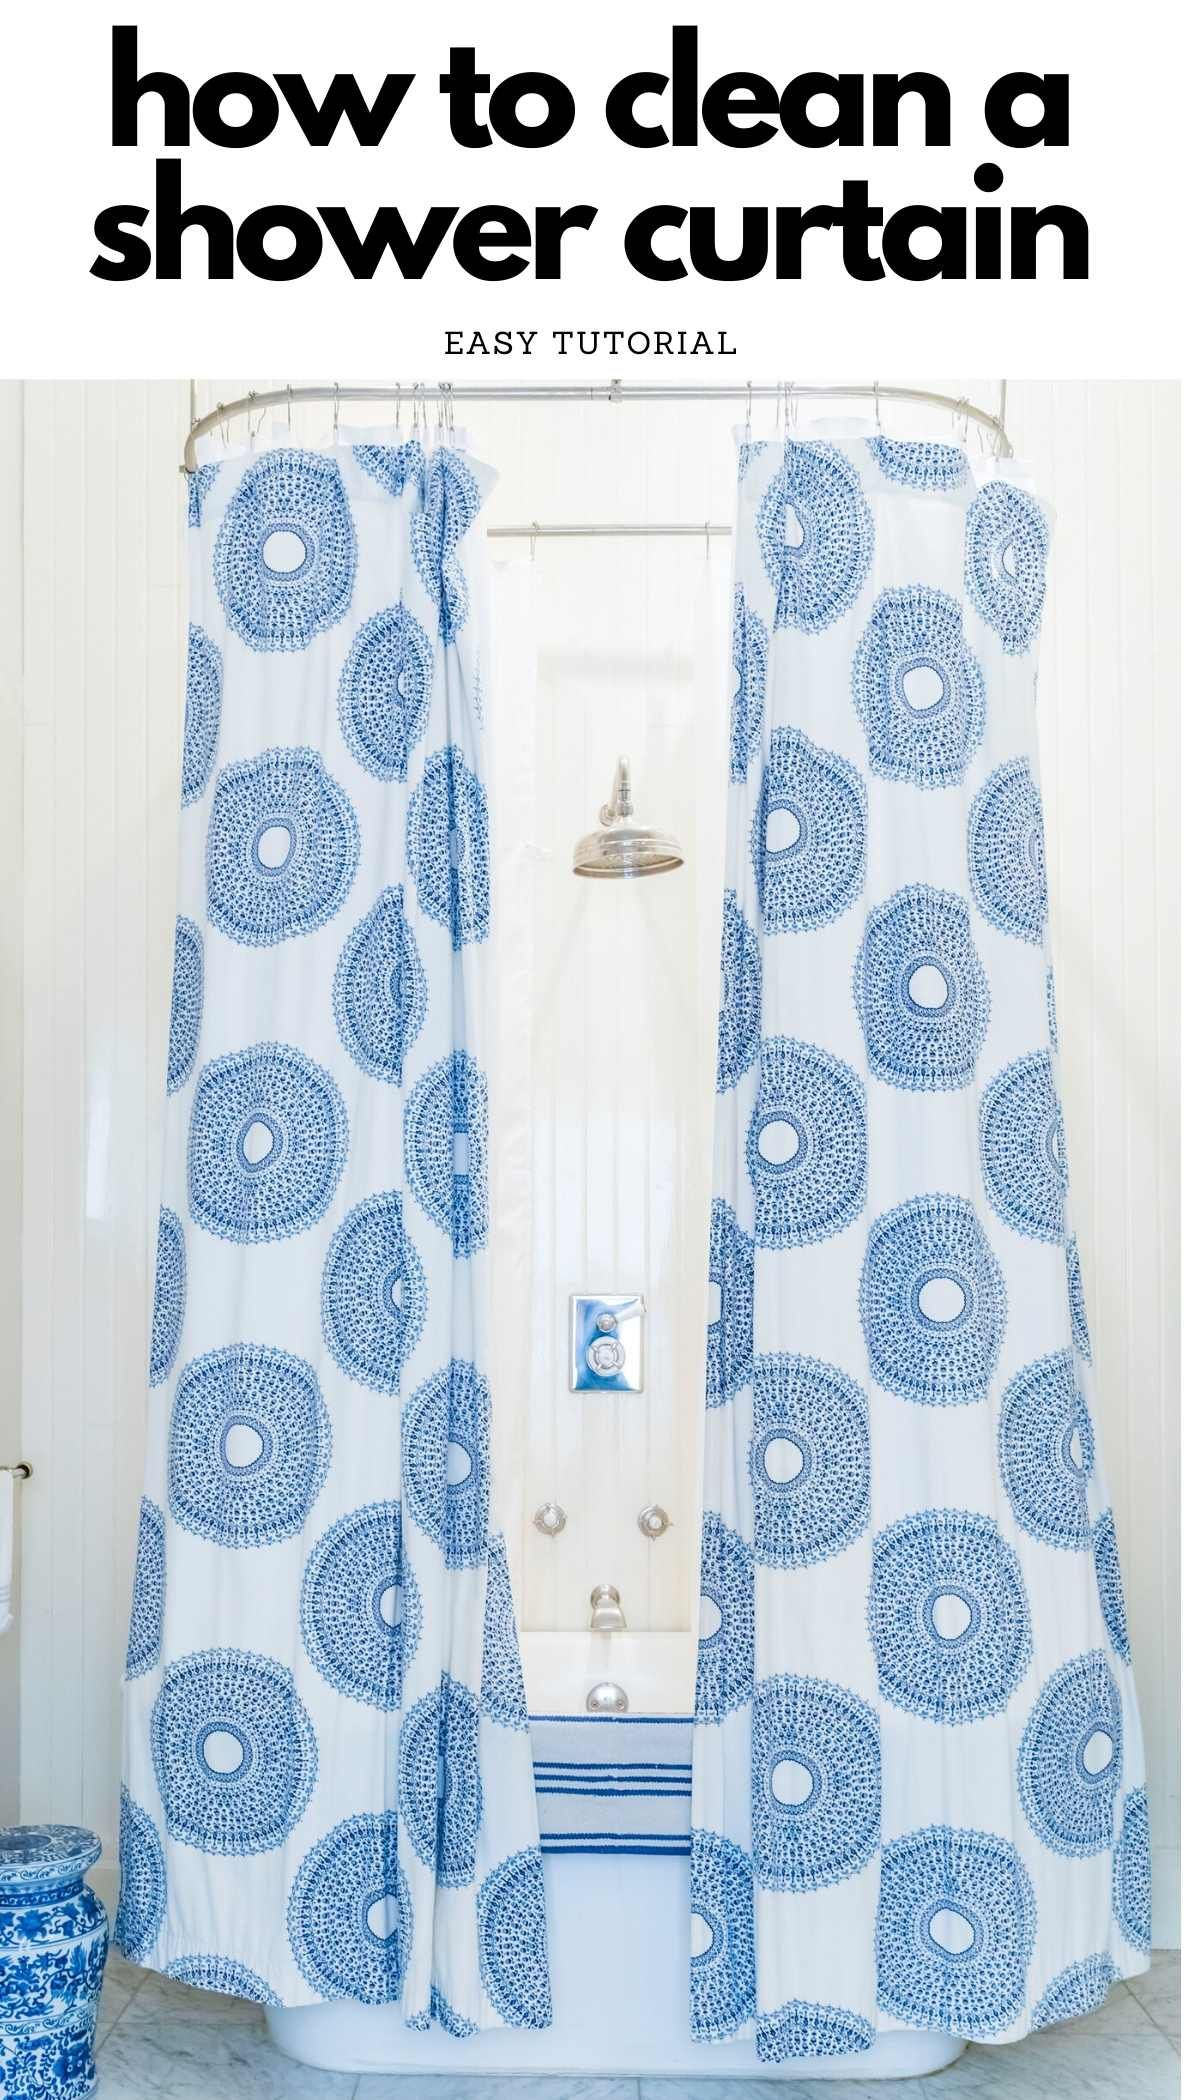 How To Clean A Shower Curtain In 2020 Shower Cleaner Clean